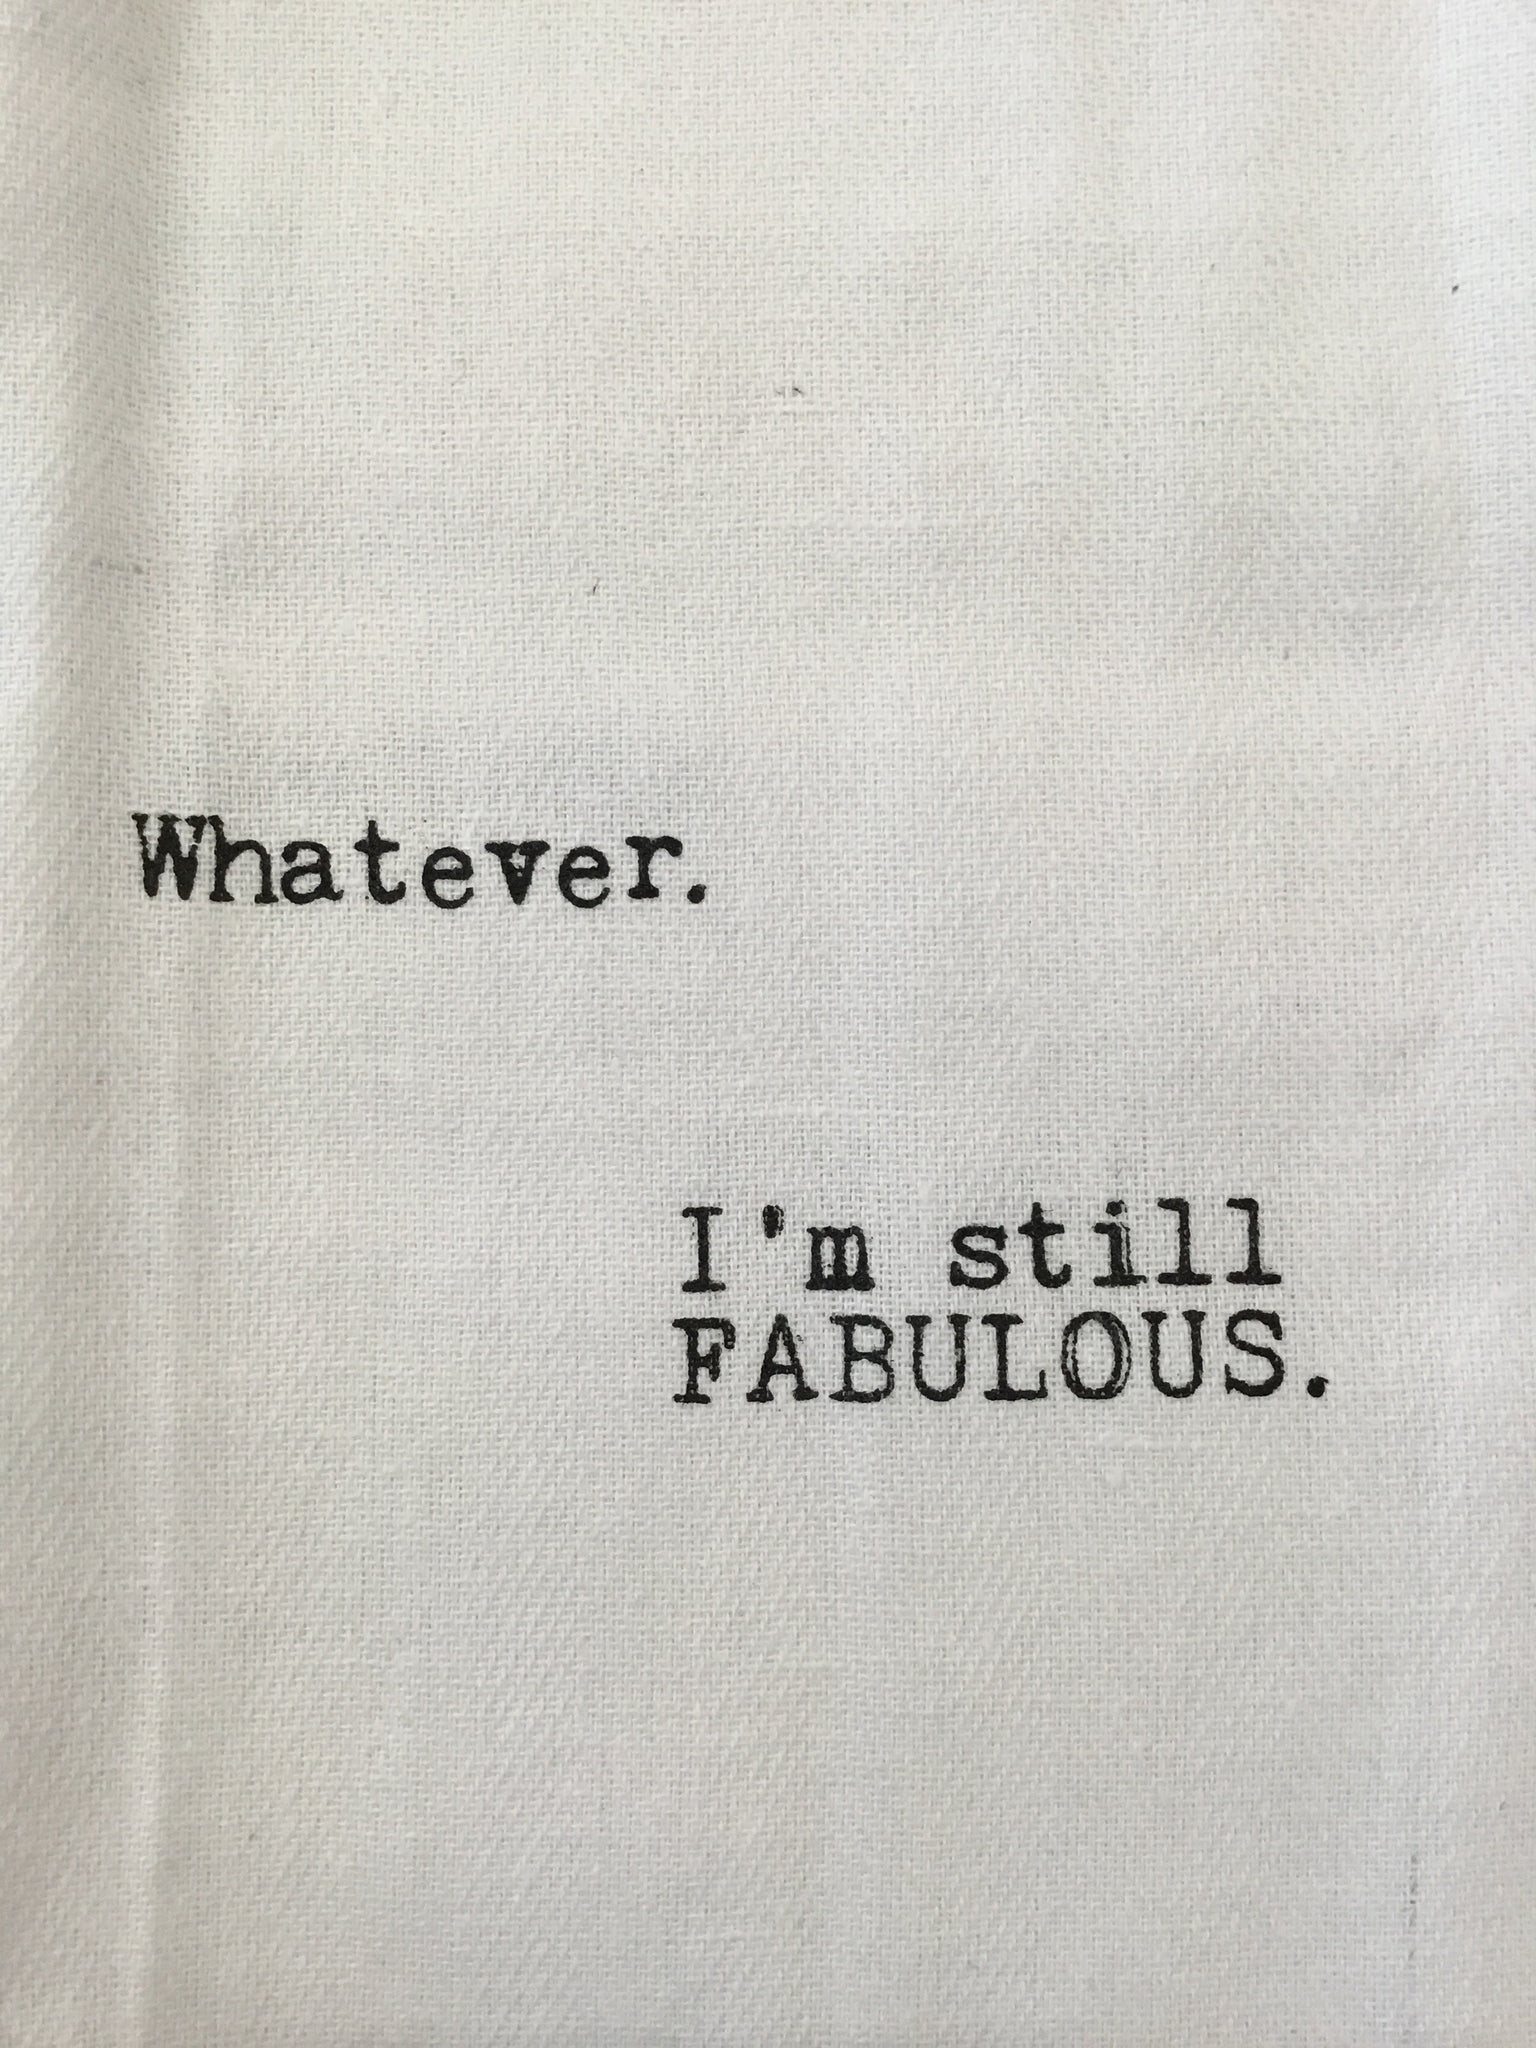 Whatever, I'm Fabulous dish towels